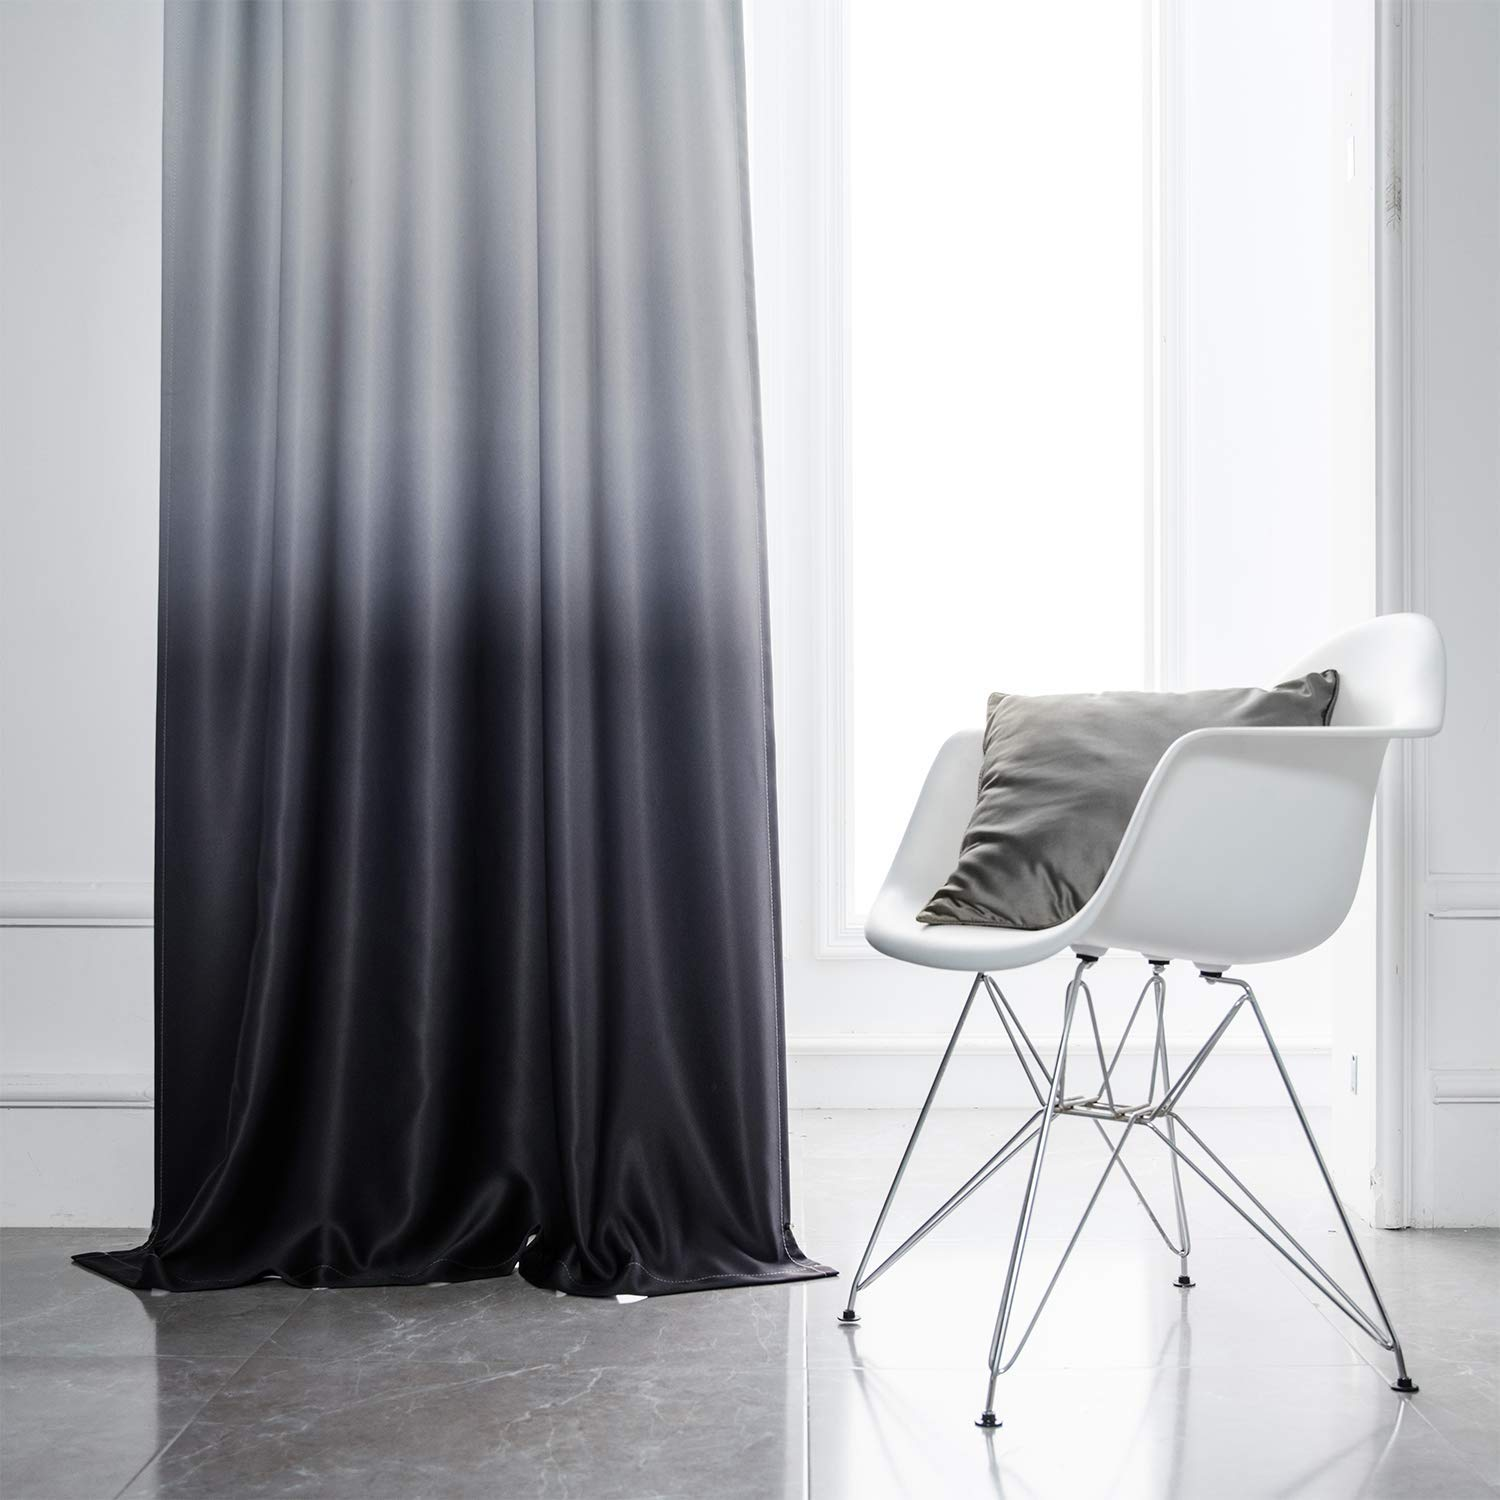 Yakamok Ombre Blackout Curtains White and Black Room Darkening Gradient Panel Curtains Thermal Insulated Rod Pocket Window Drapes for Living Room/Bedroom (Black, 2 Panels, 52x84 Inch)